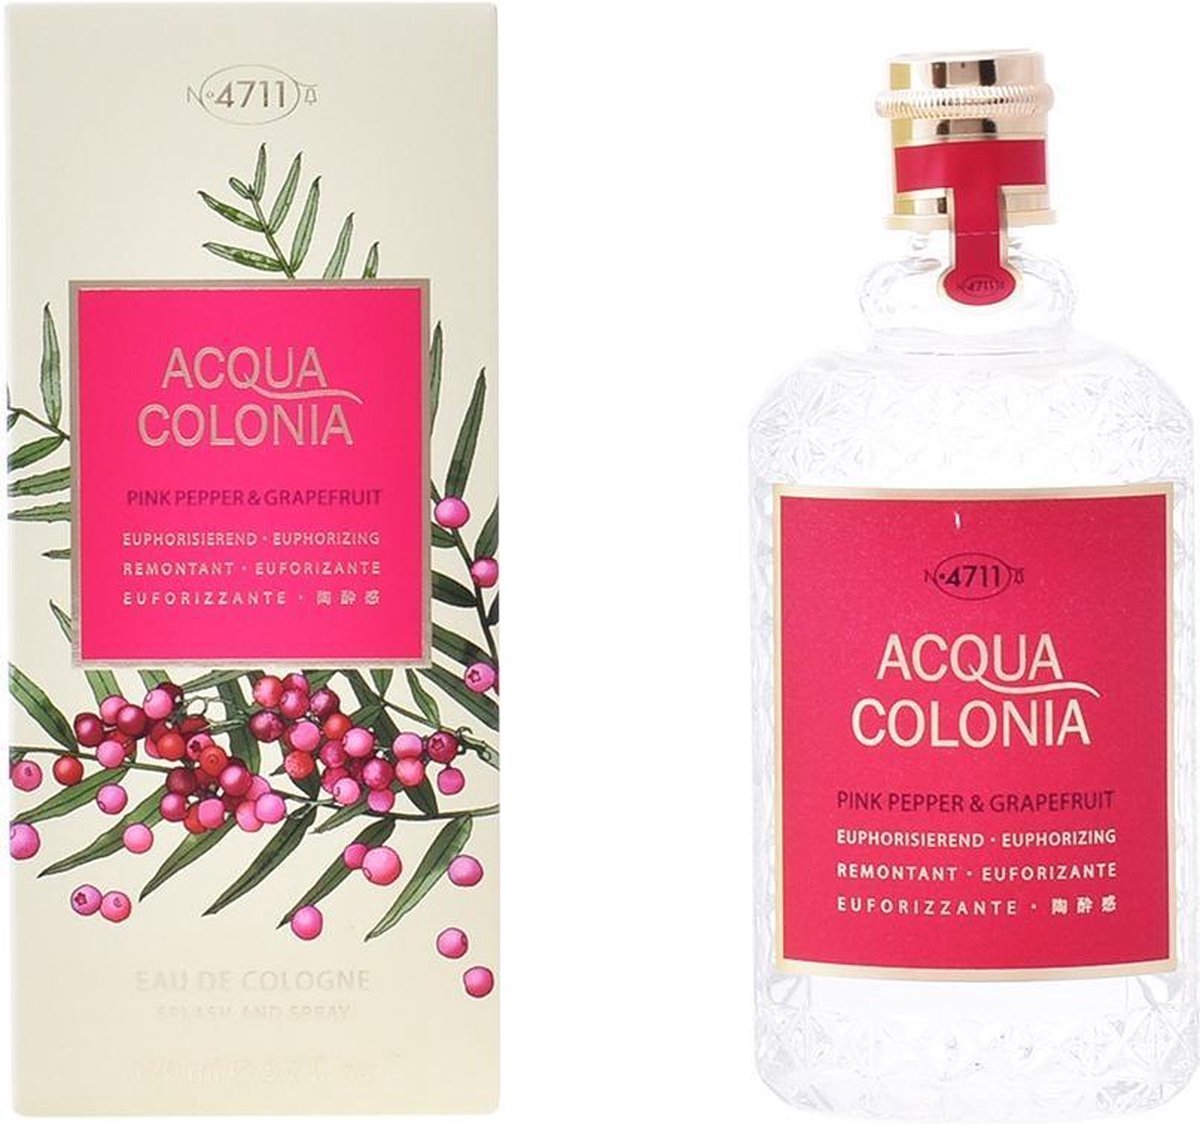 MULTI BUNDEL 2 flesjes 4711 ACQUA COLONIA Pink Pepper & Grapefruit - eau de cologne - spray 170 ml